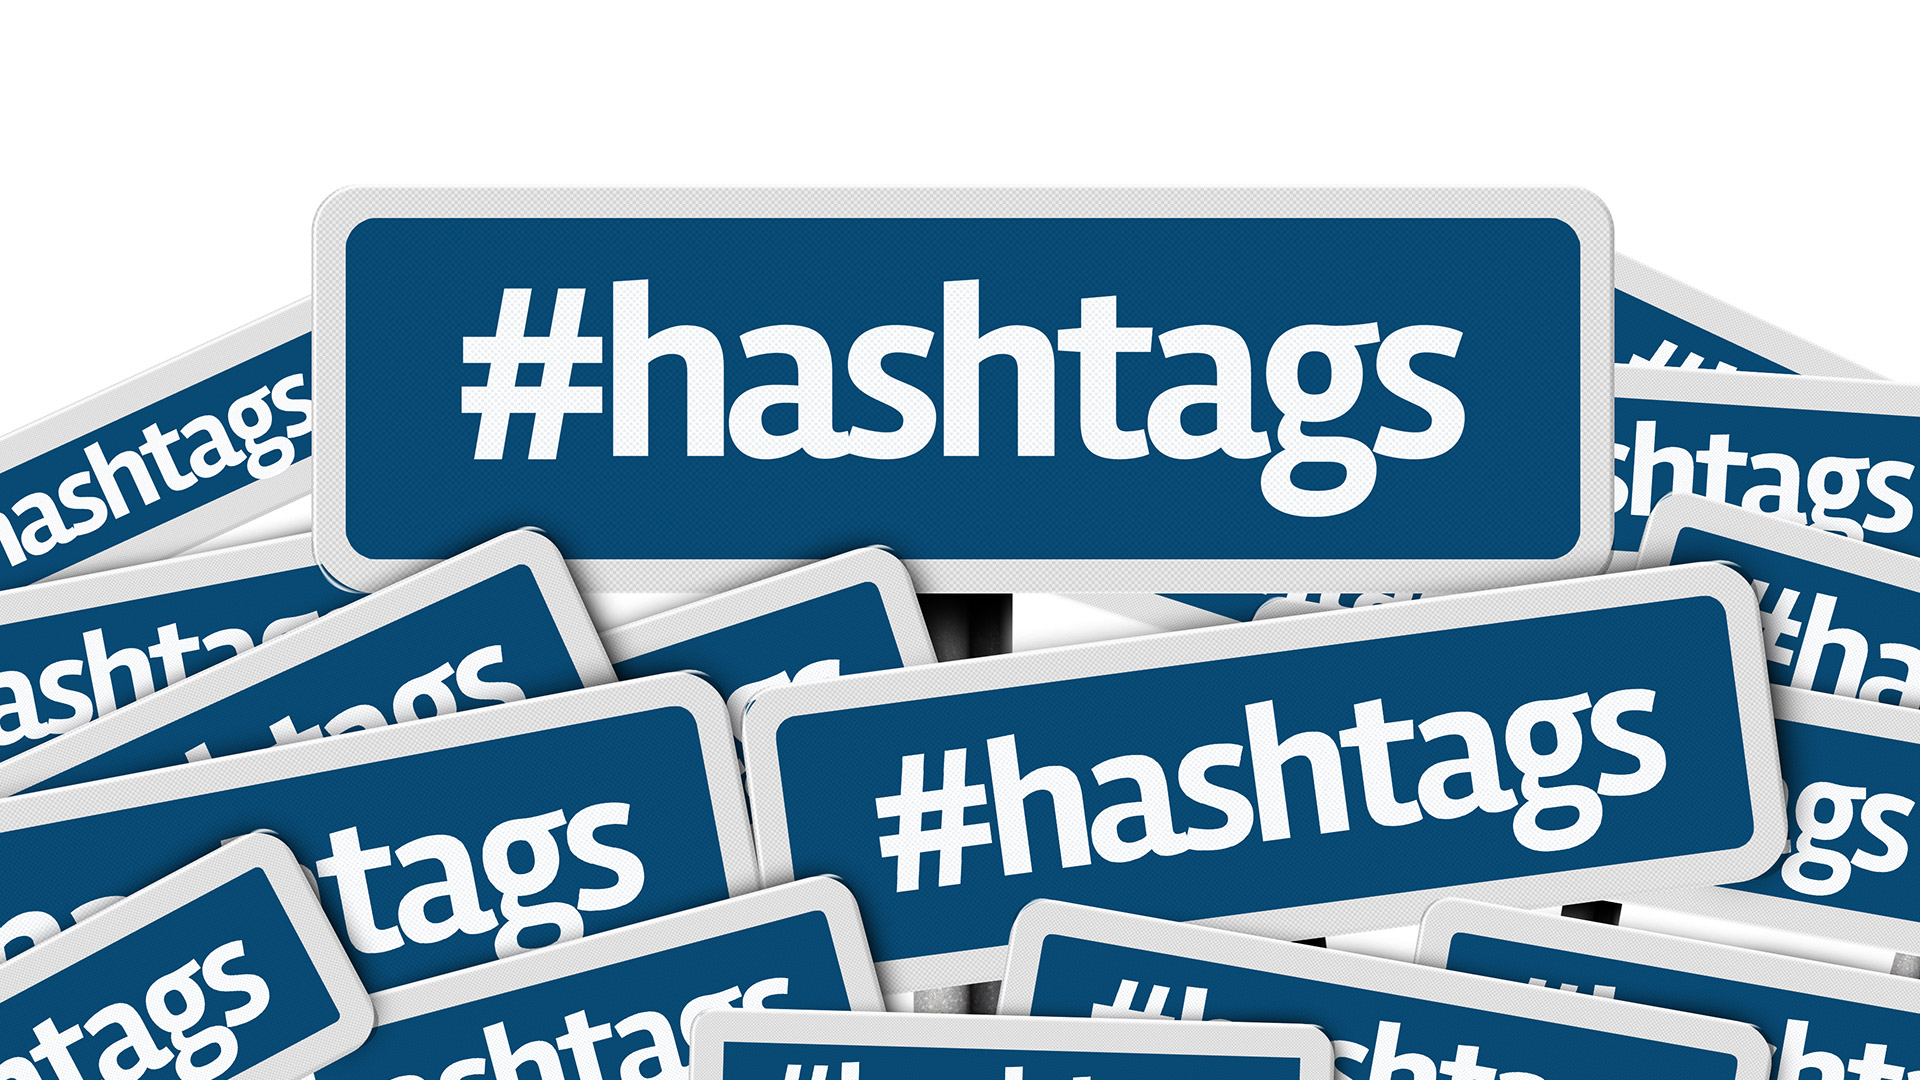 Following healthcare hastags on Twitter can keep you informed online